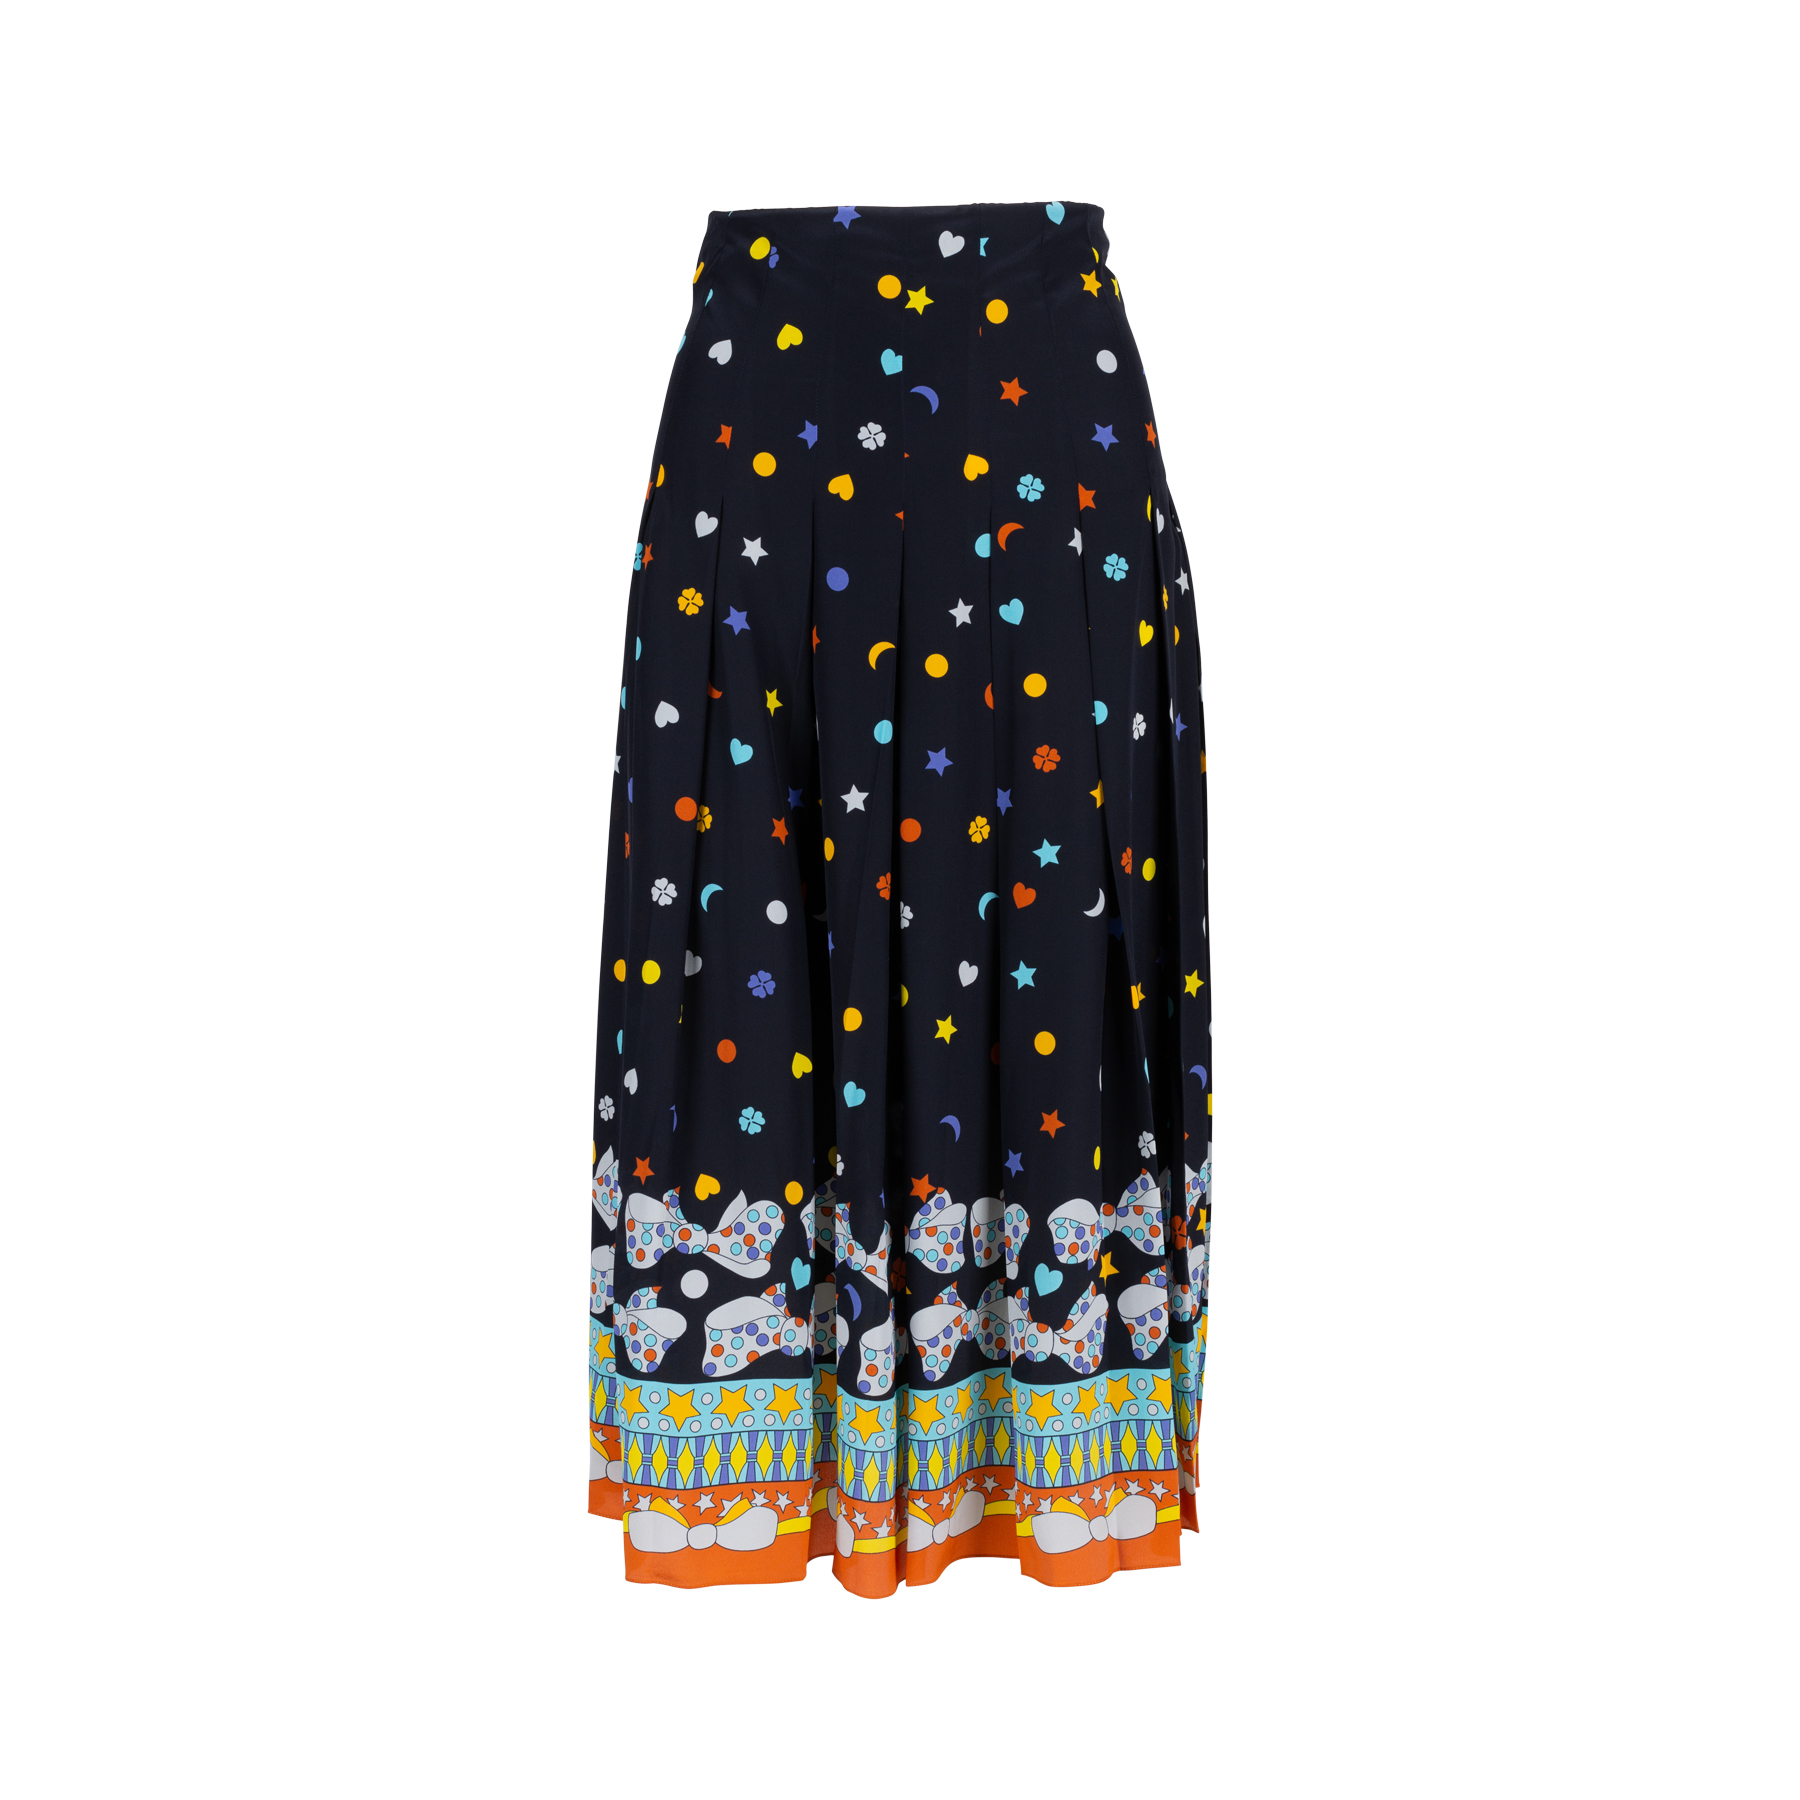 3c533ed52cdd Authentic Second Hand Gucci Printed Pleated Skirt (PSS-414-00026 ...